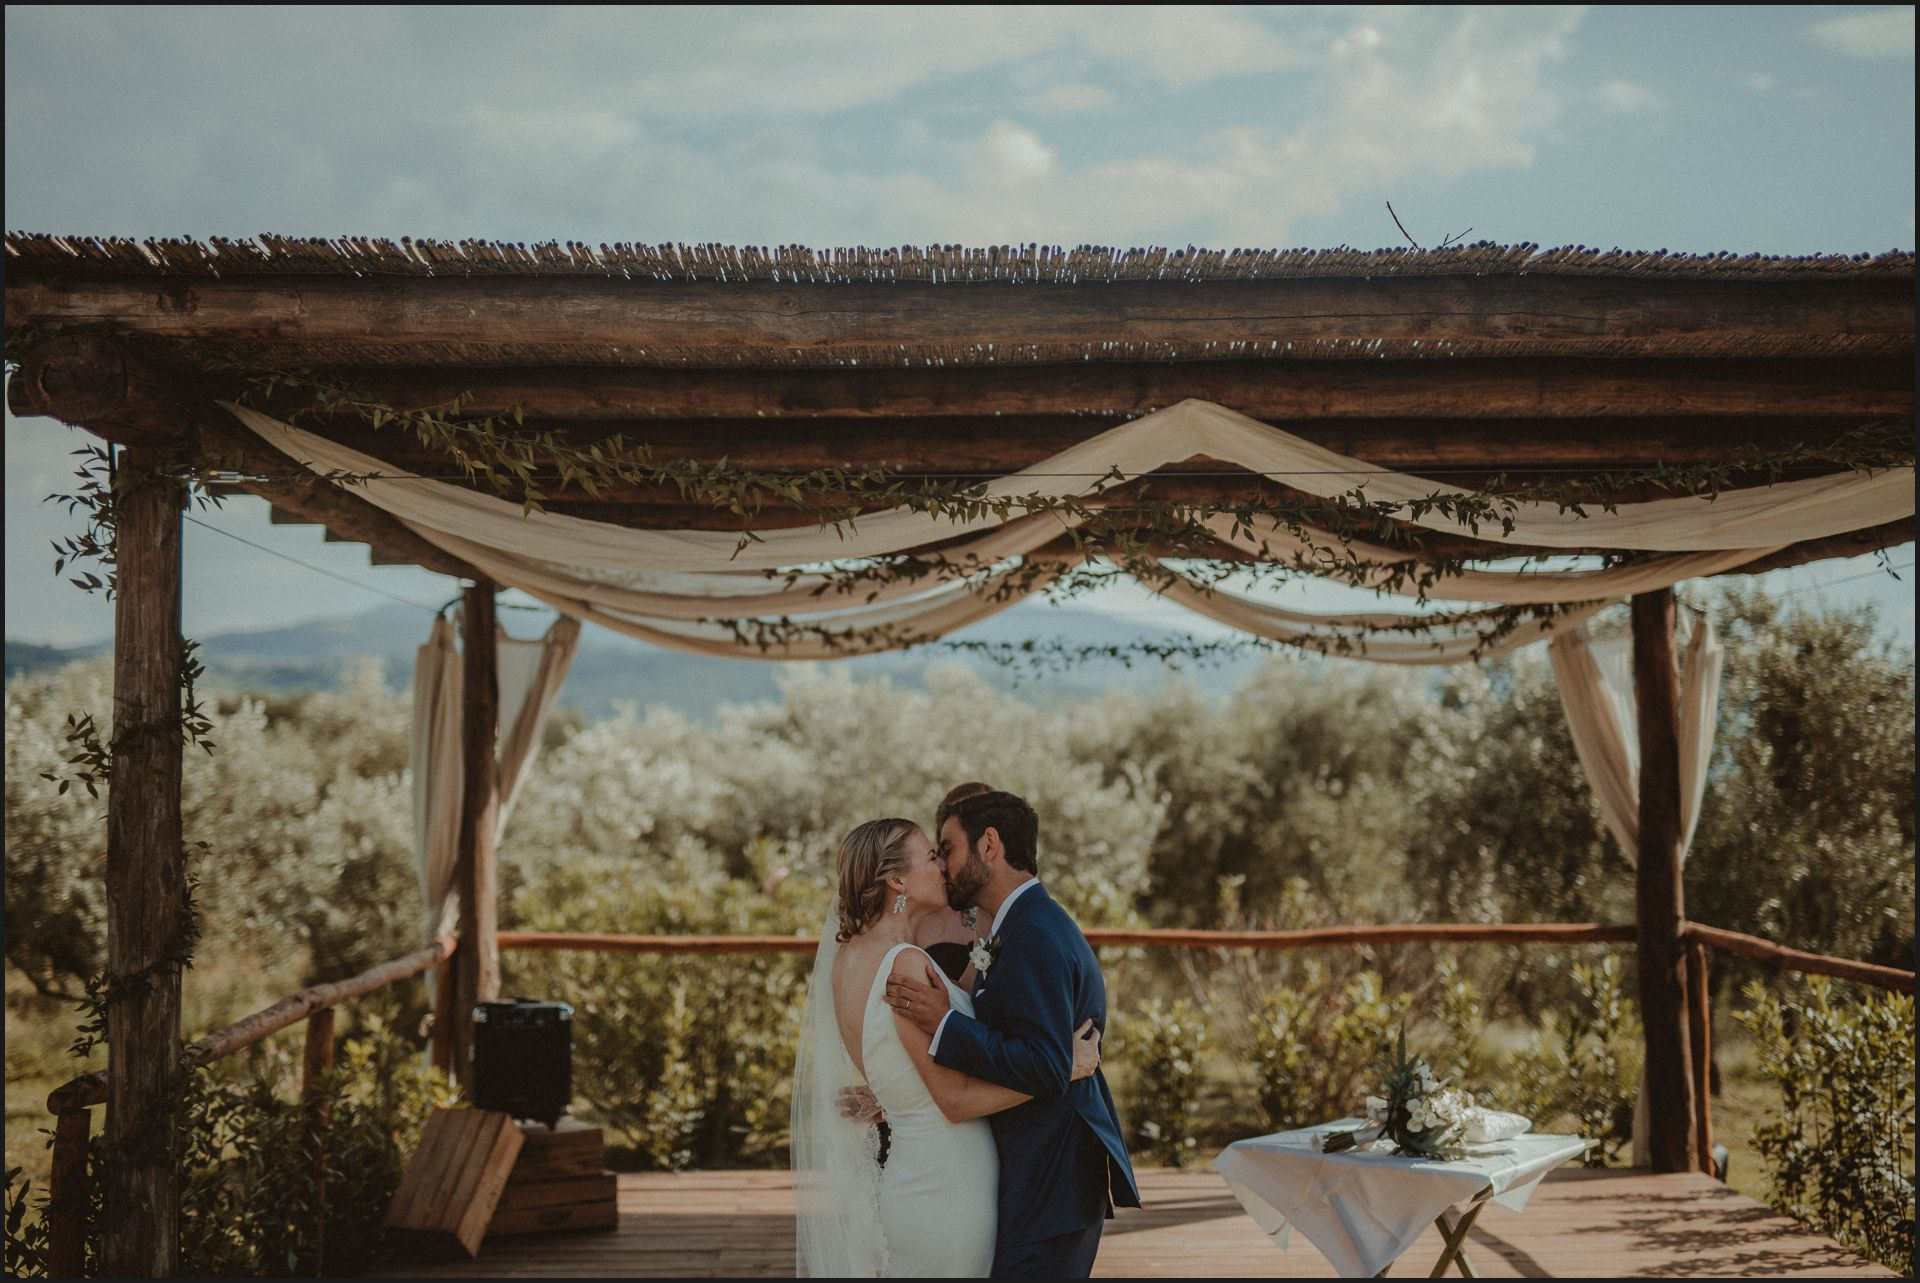 tenuta di canonica, umbria, wedding, ceremony, country, bride, groom, kiss